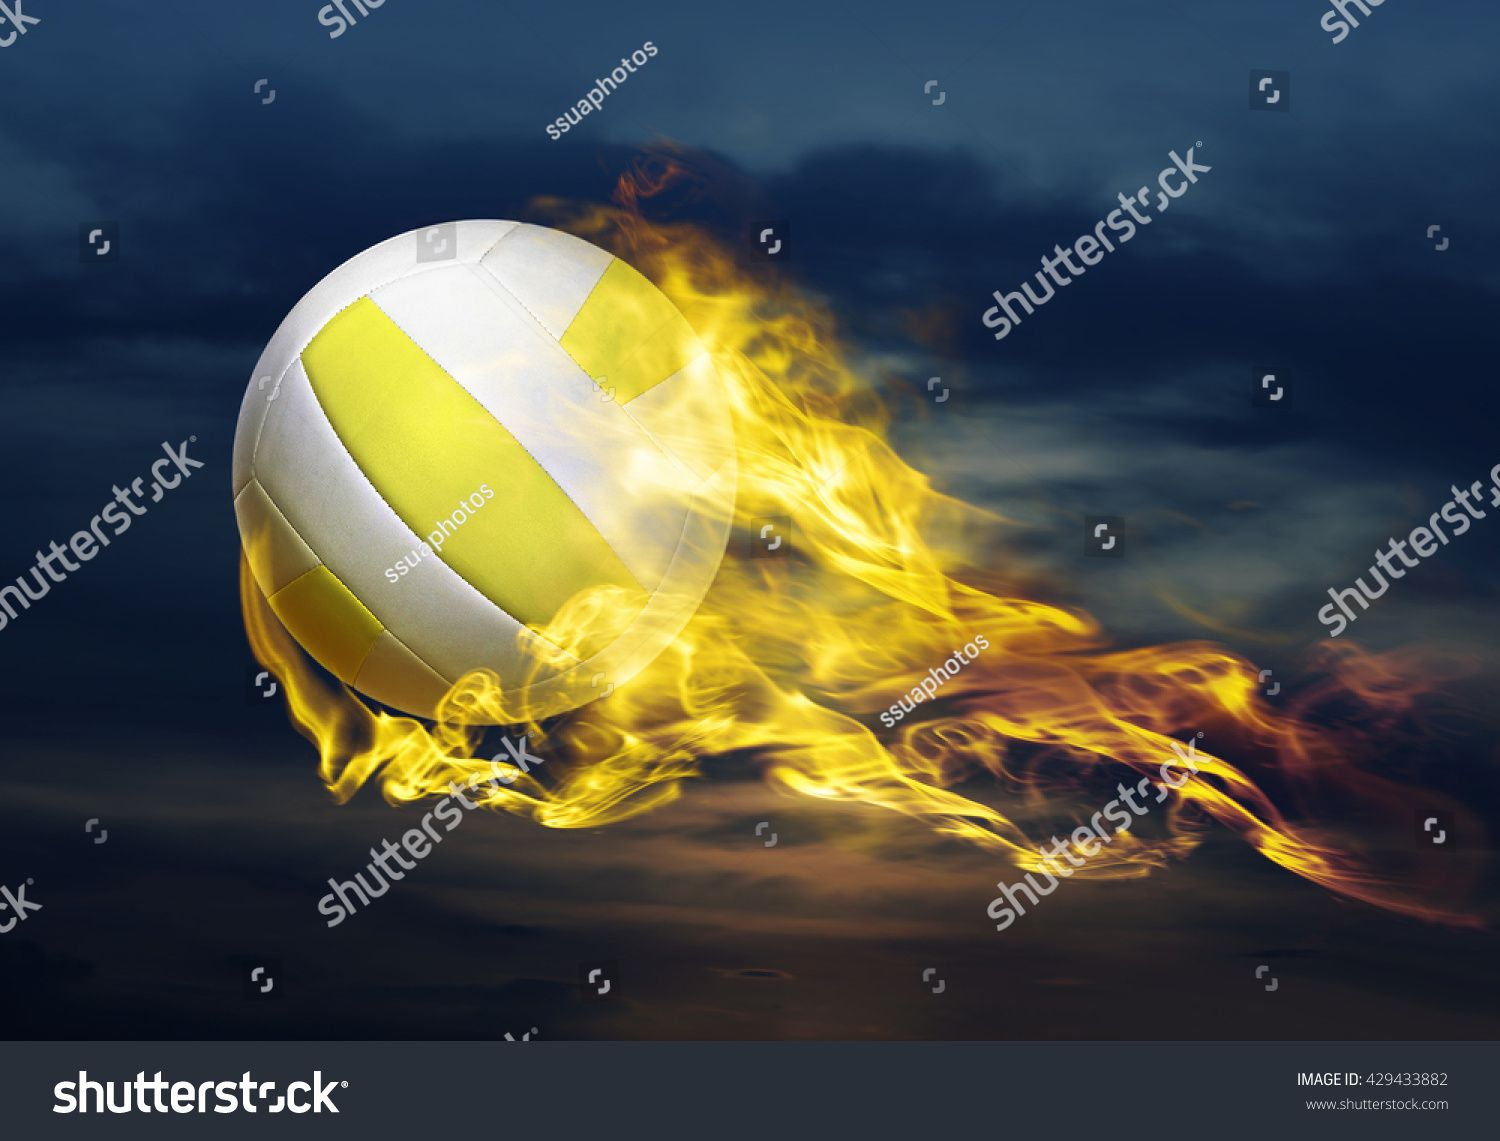 Woman Hold Volleyball In Her Hands Blue Background Ad Ad Volleyball Hold Woman Background Photo Editing Volleyball Women